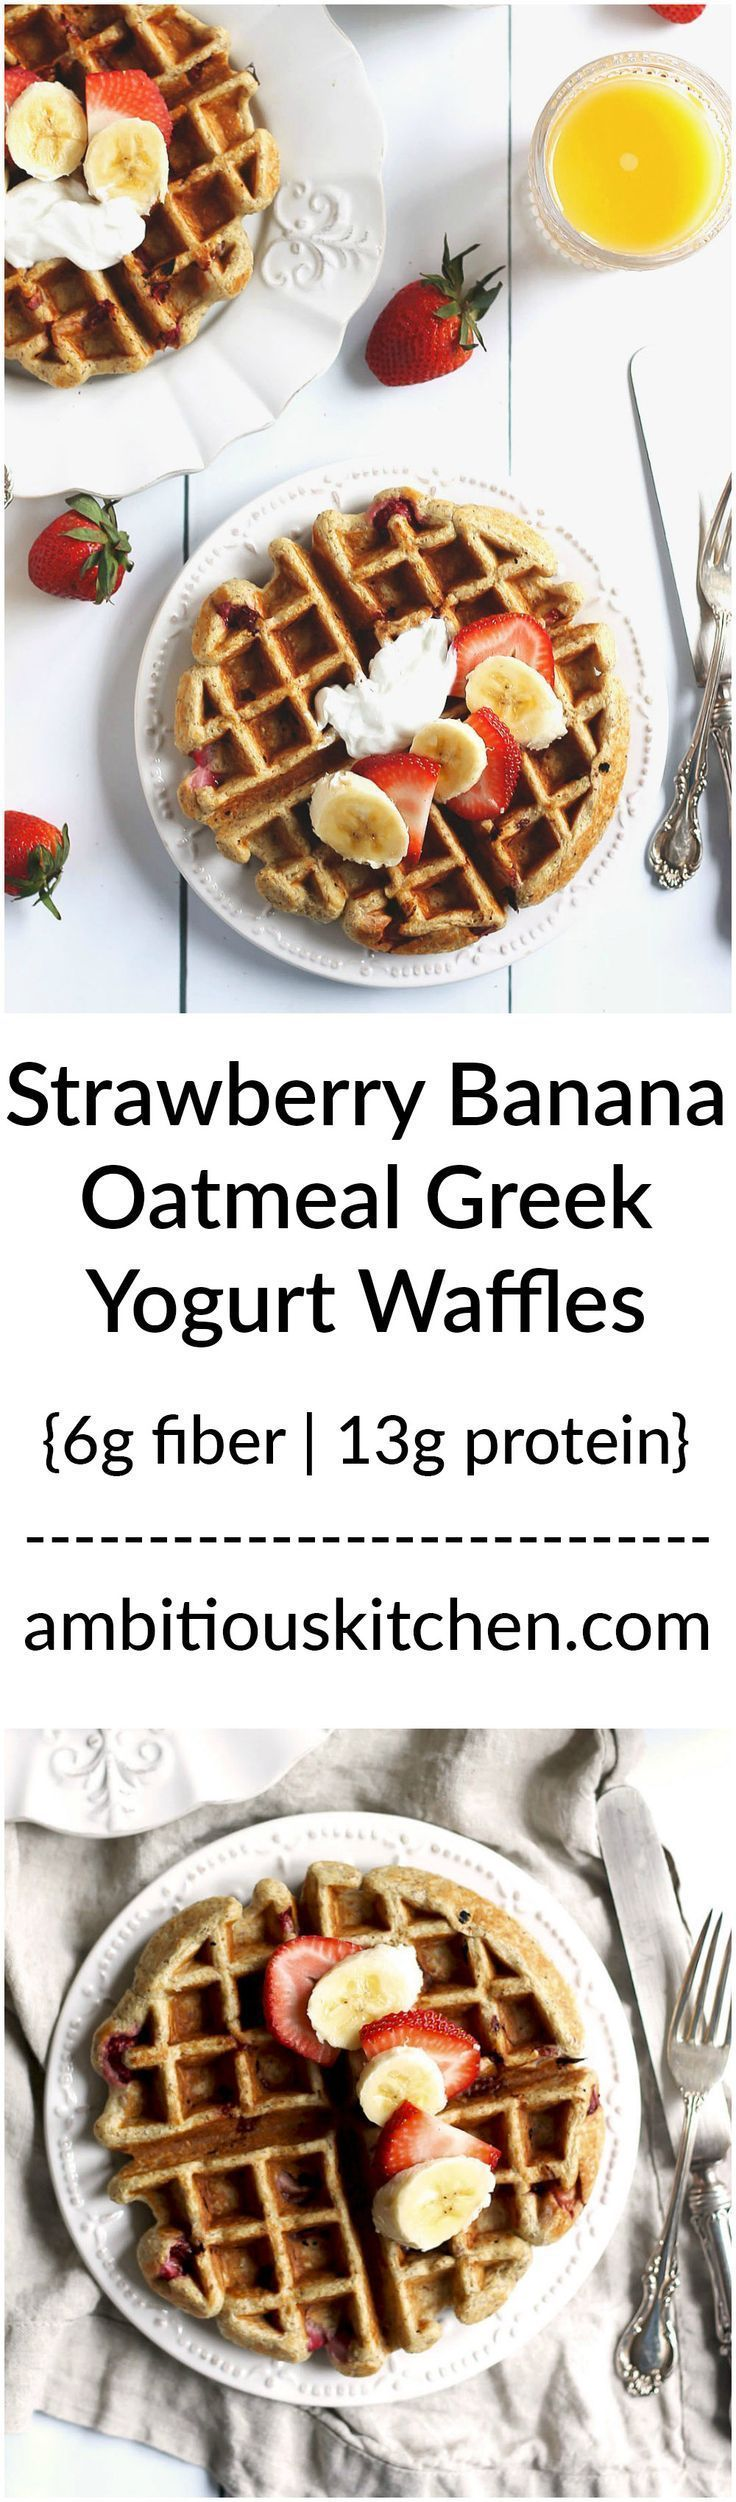 Healthy Strawberry Banana Oatmeal Greek Yogurt Waffles packed with protein, fiber and nutrition. Just toss everything in the blender (besides the strawberries) to make the batter! Top with peanut butter, maple syrup or extra greek yogurt.